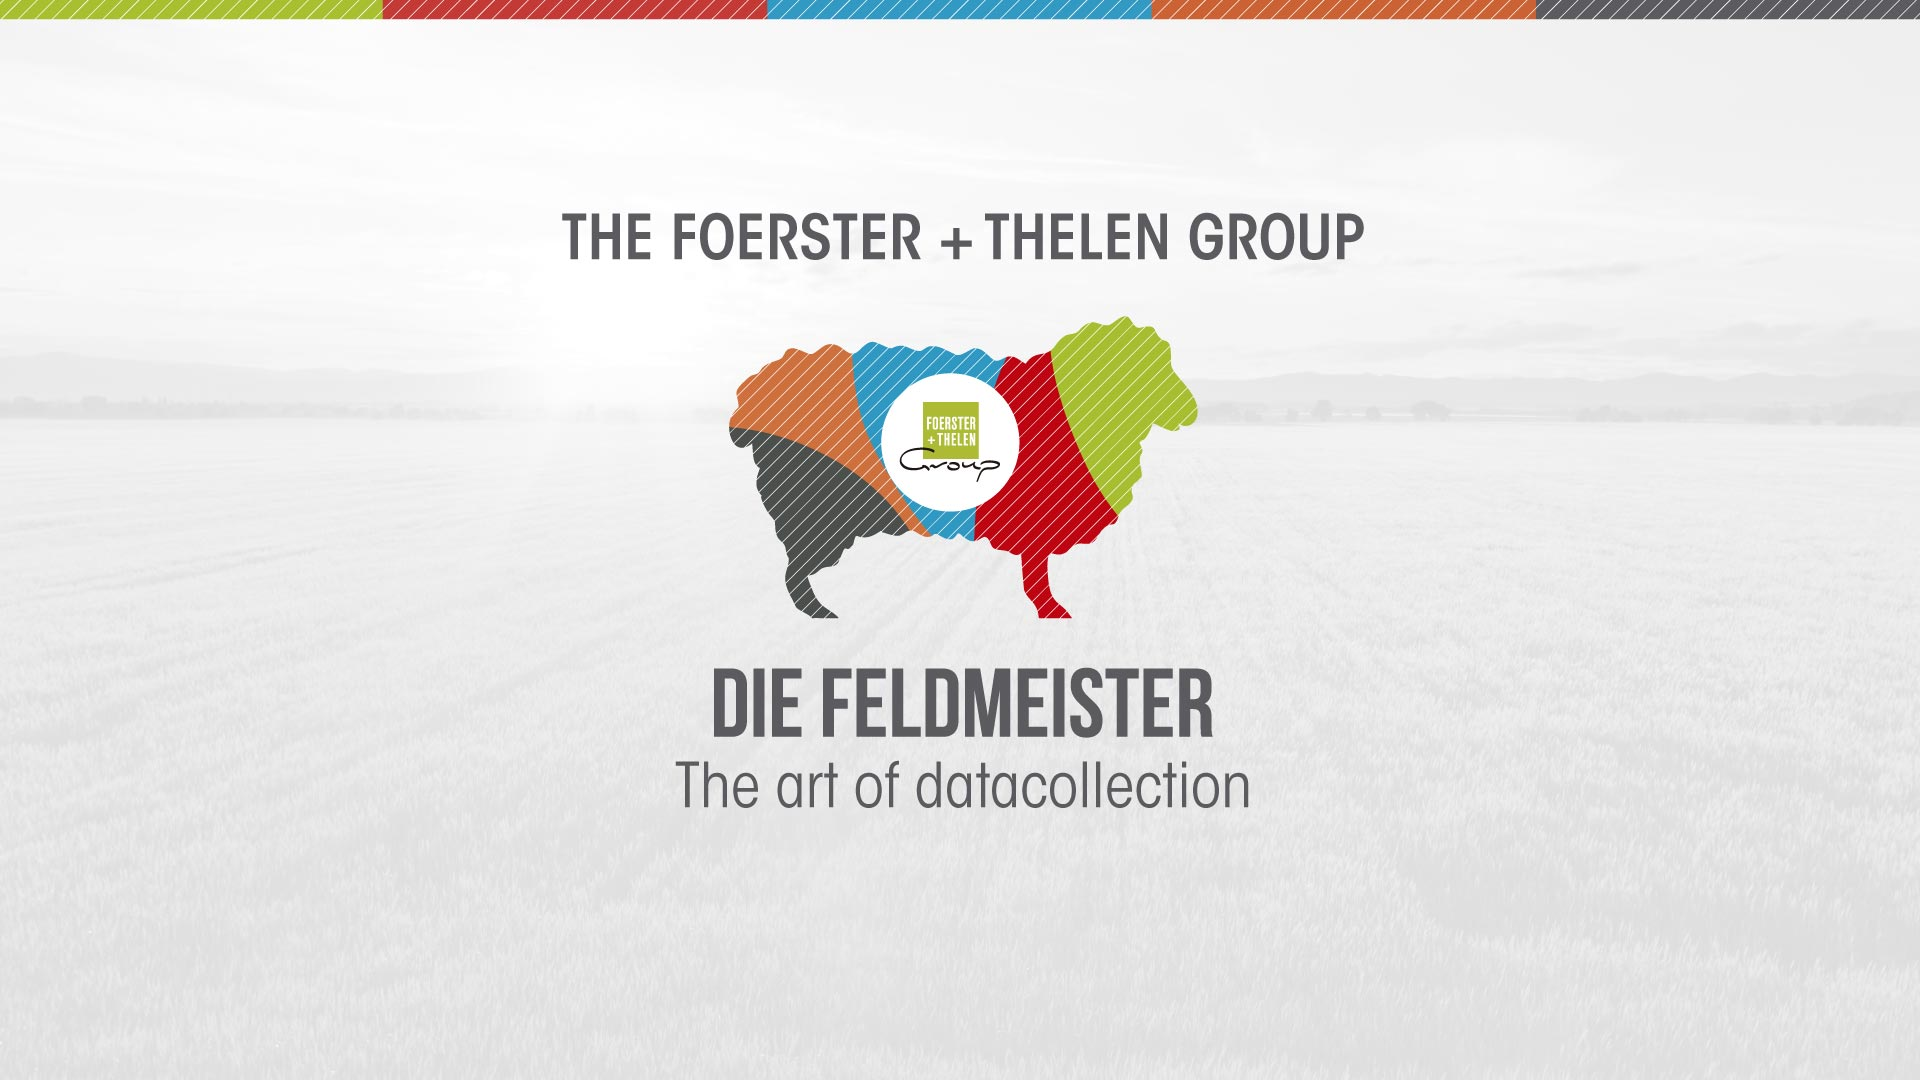 The Foerster + Thelen Group